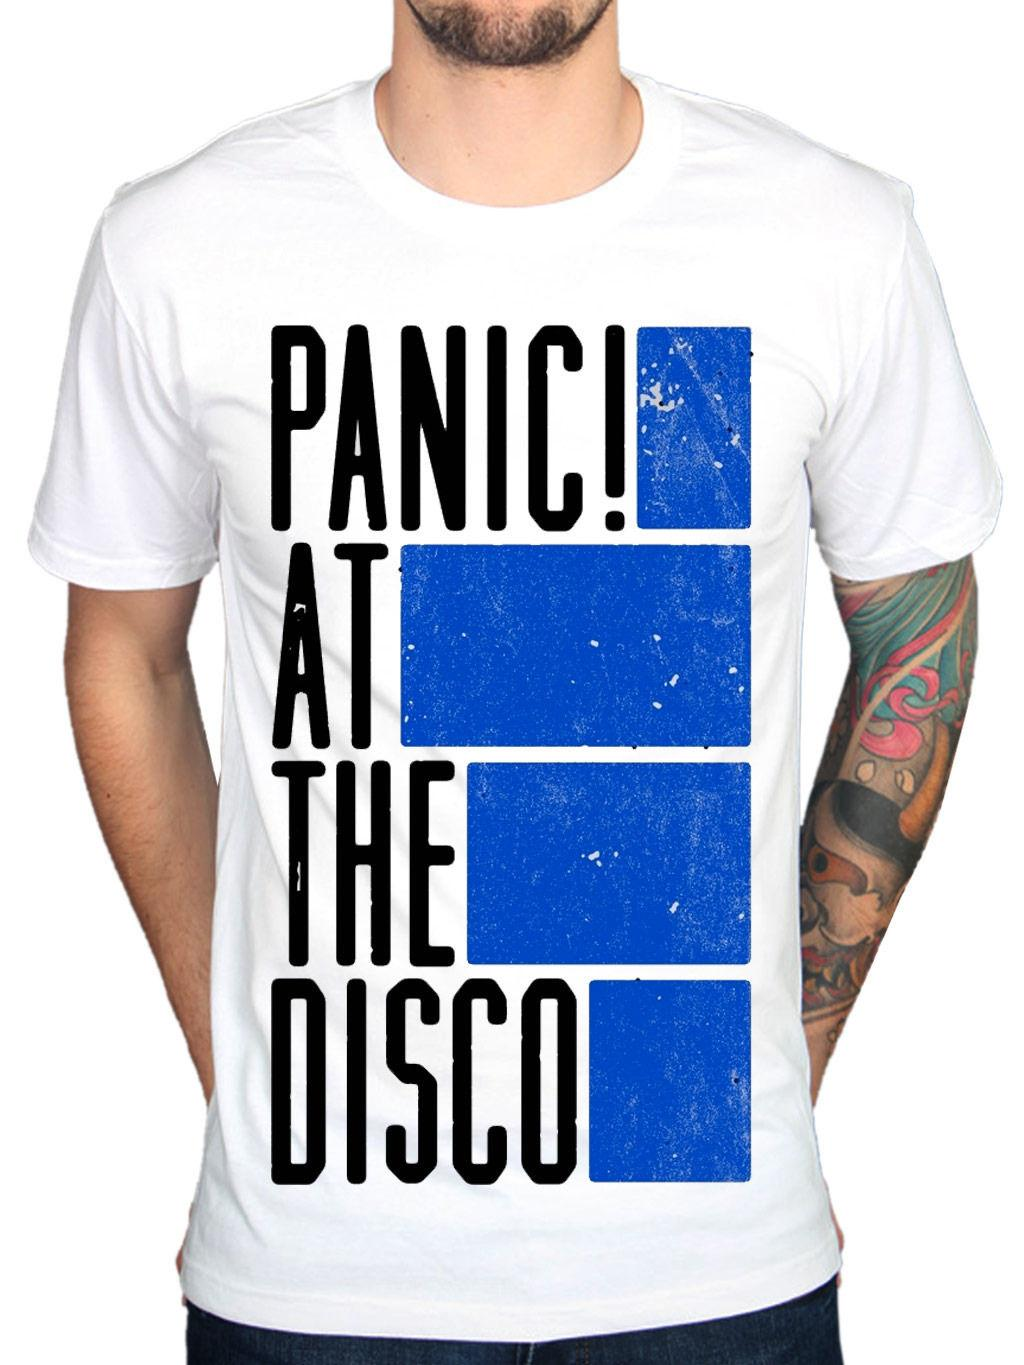 503812a3 Official Panic! At The Disco Bars T-Shirt PATD Live In Chicago Pretty New Merch  Men's Clothing T-Shirts Tees Men Hot Cheap Short Sleeve Male